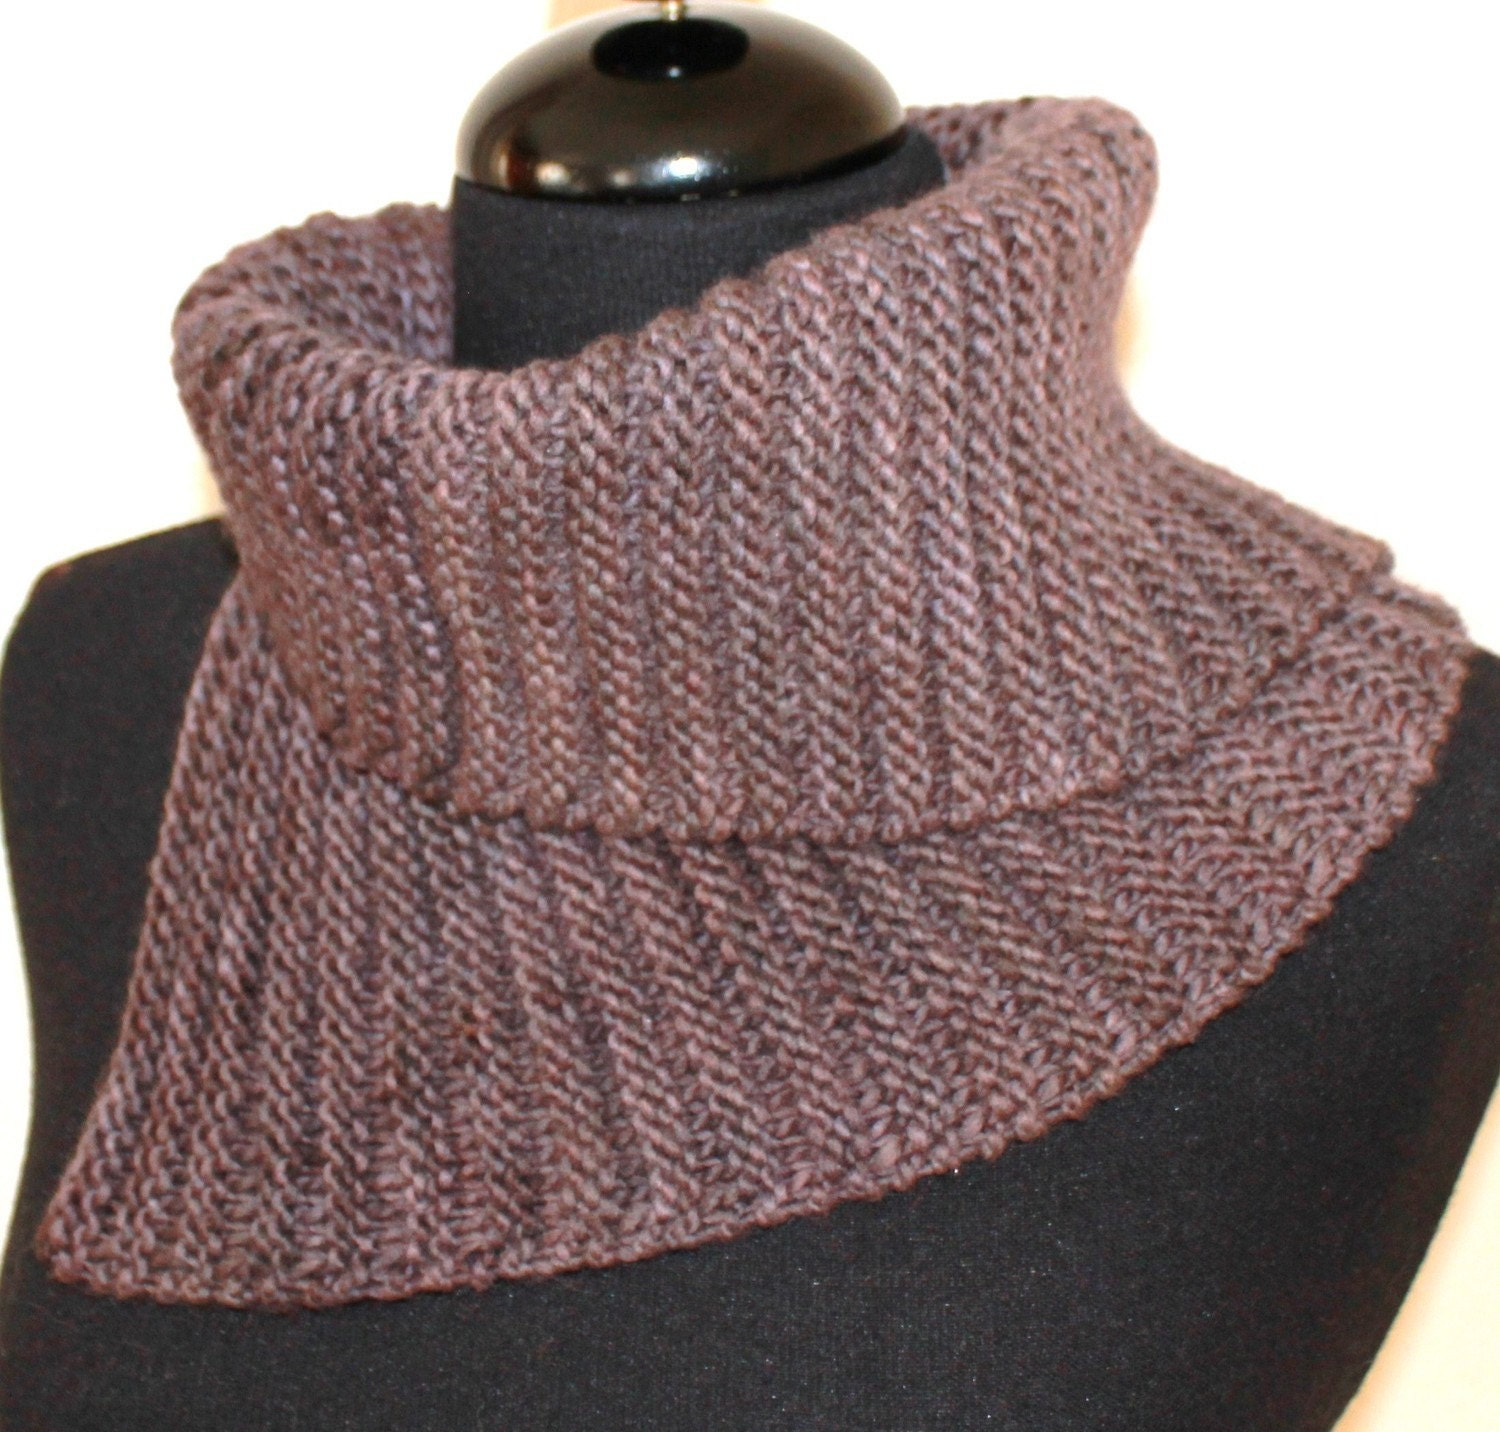 PATTERN Cowl Neckwarmer Easy Knitting Pattern ABSOLUTE COWL